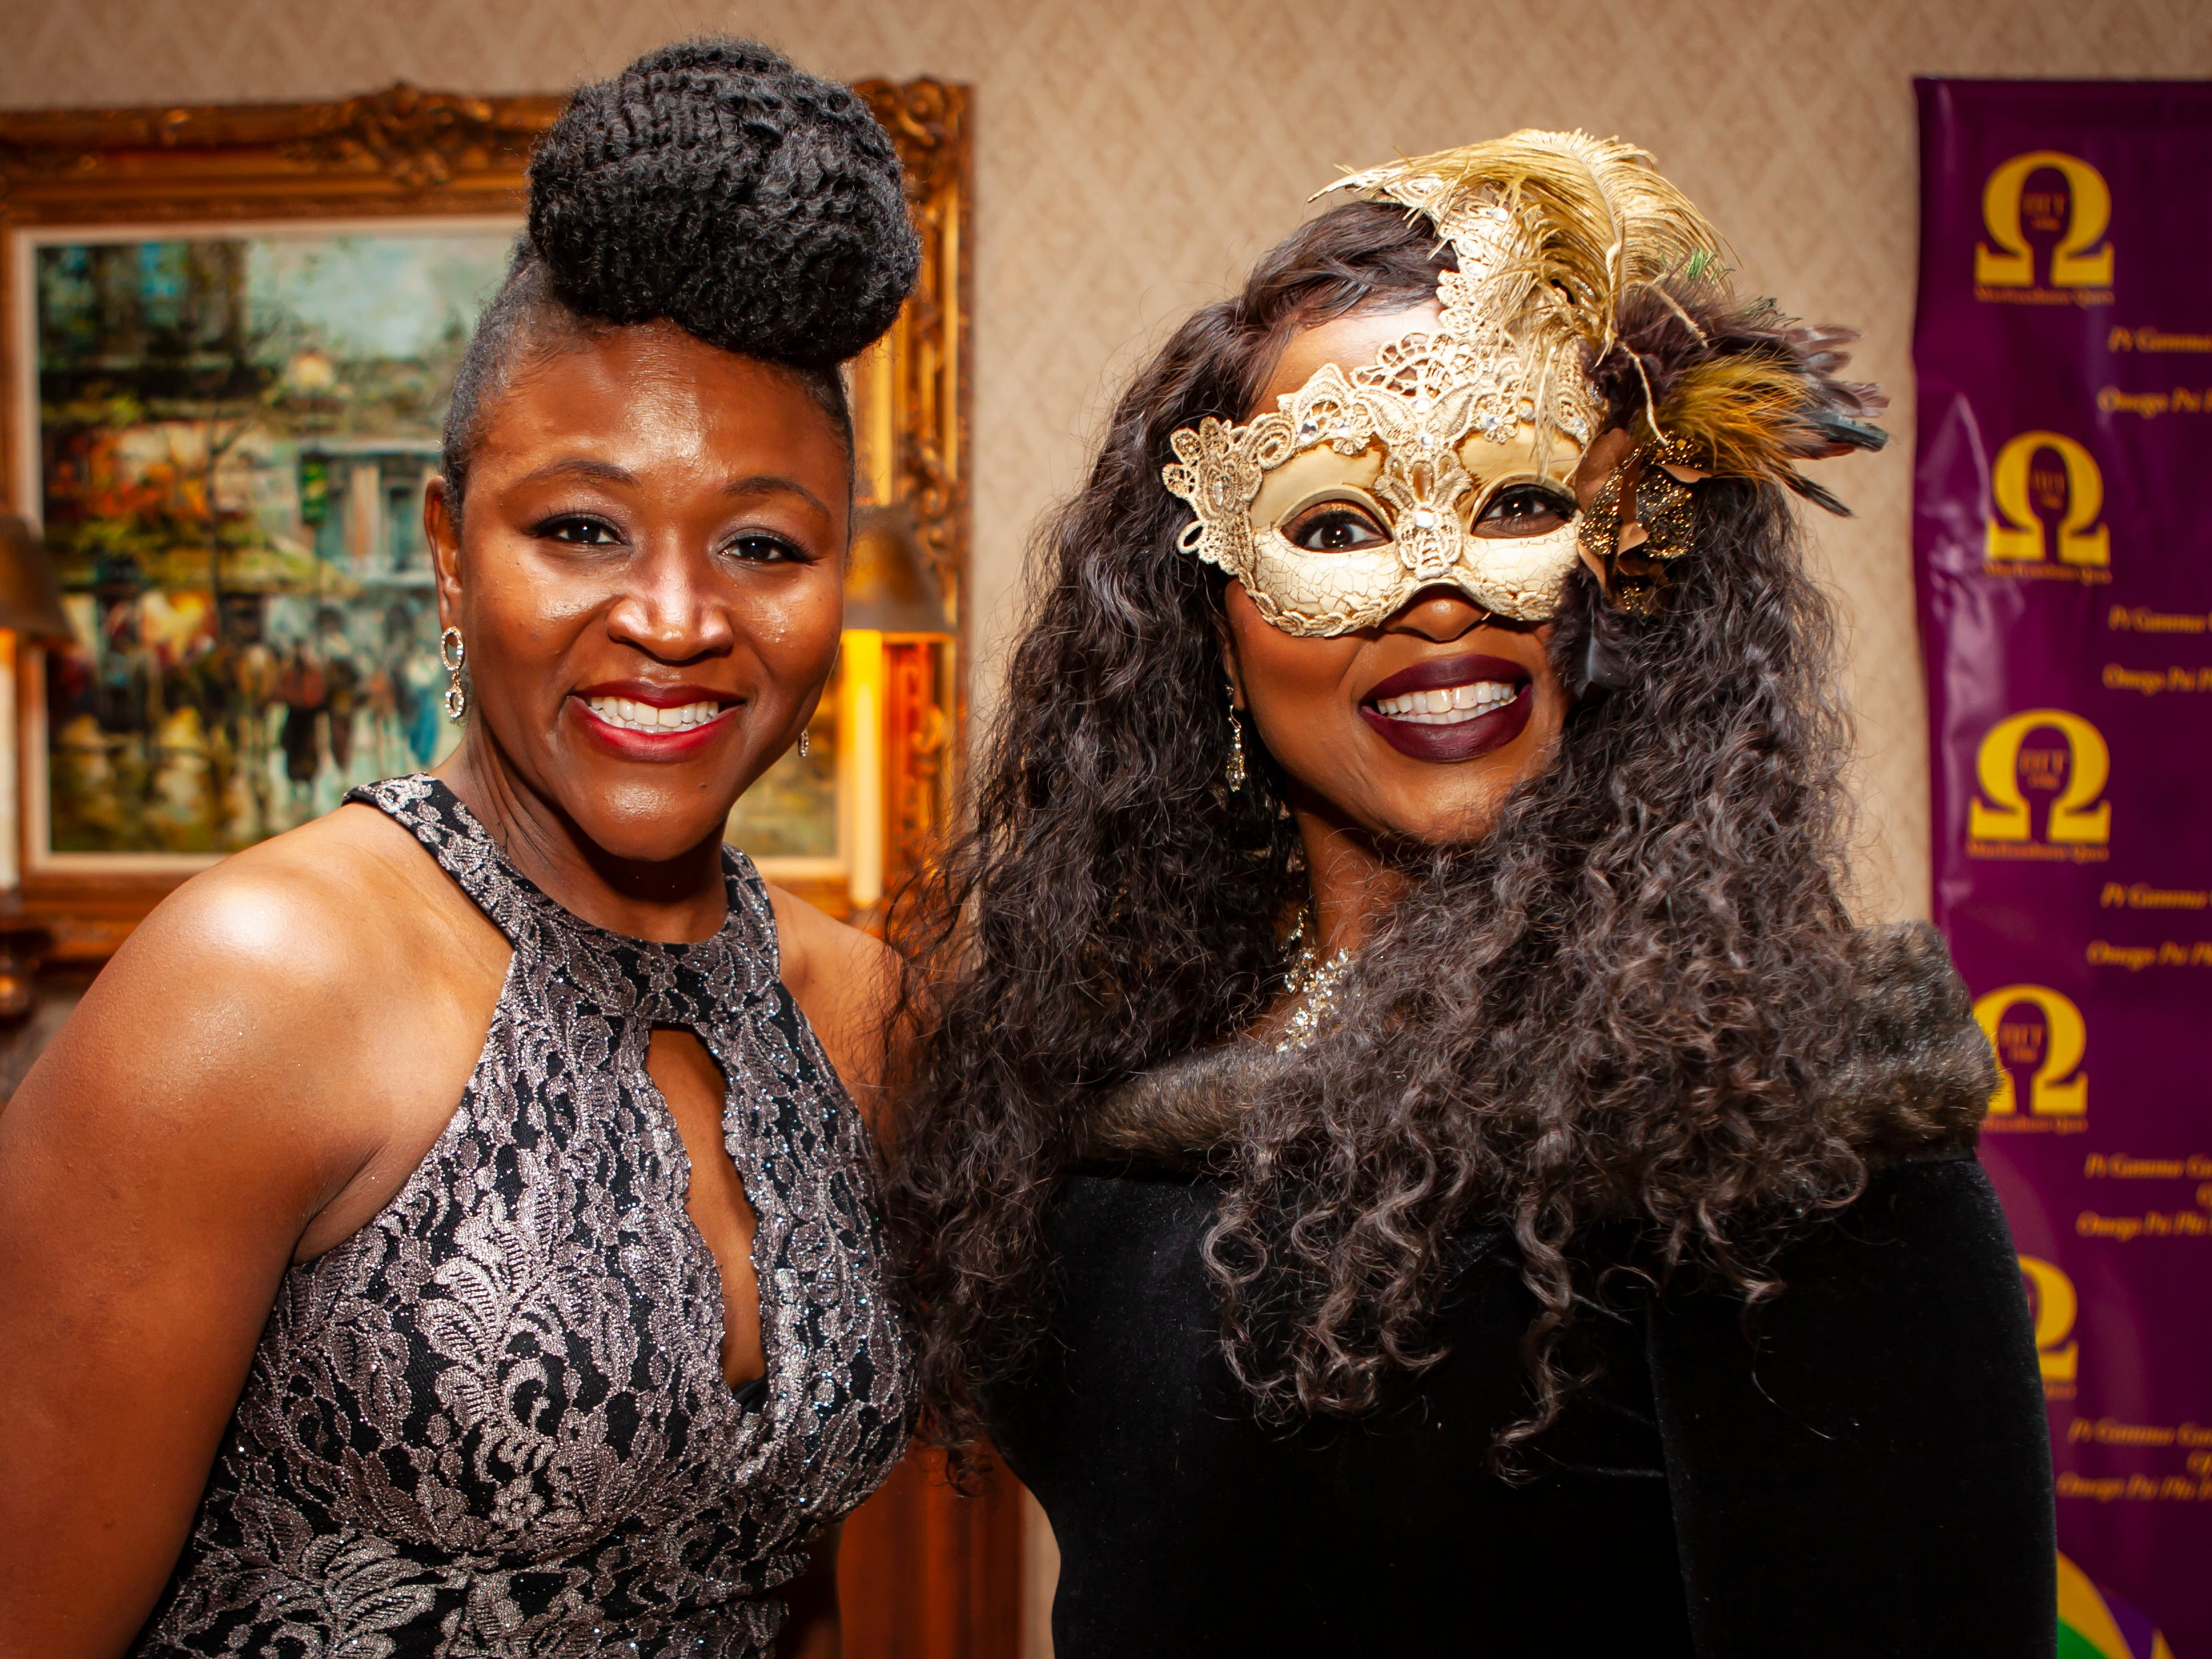 The Omega Psi Phi Mardi Gras party was held Saturday, Feb. 9, 2018 at Stones River Country Club in Murfreesboro.